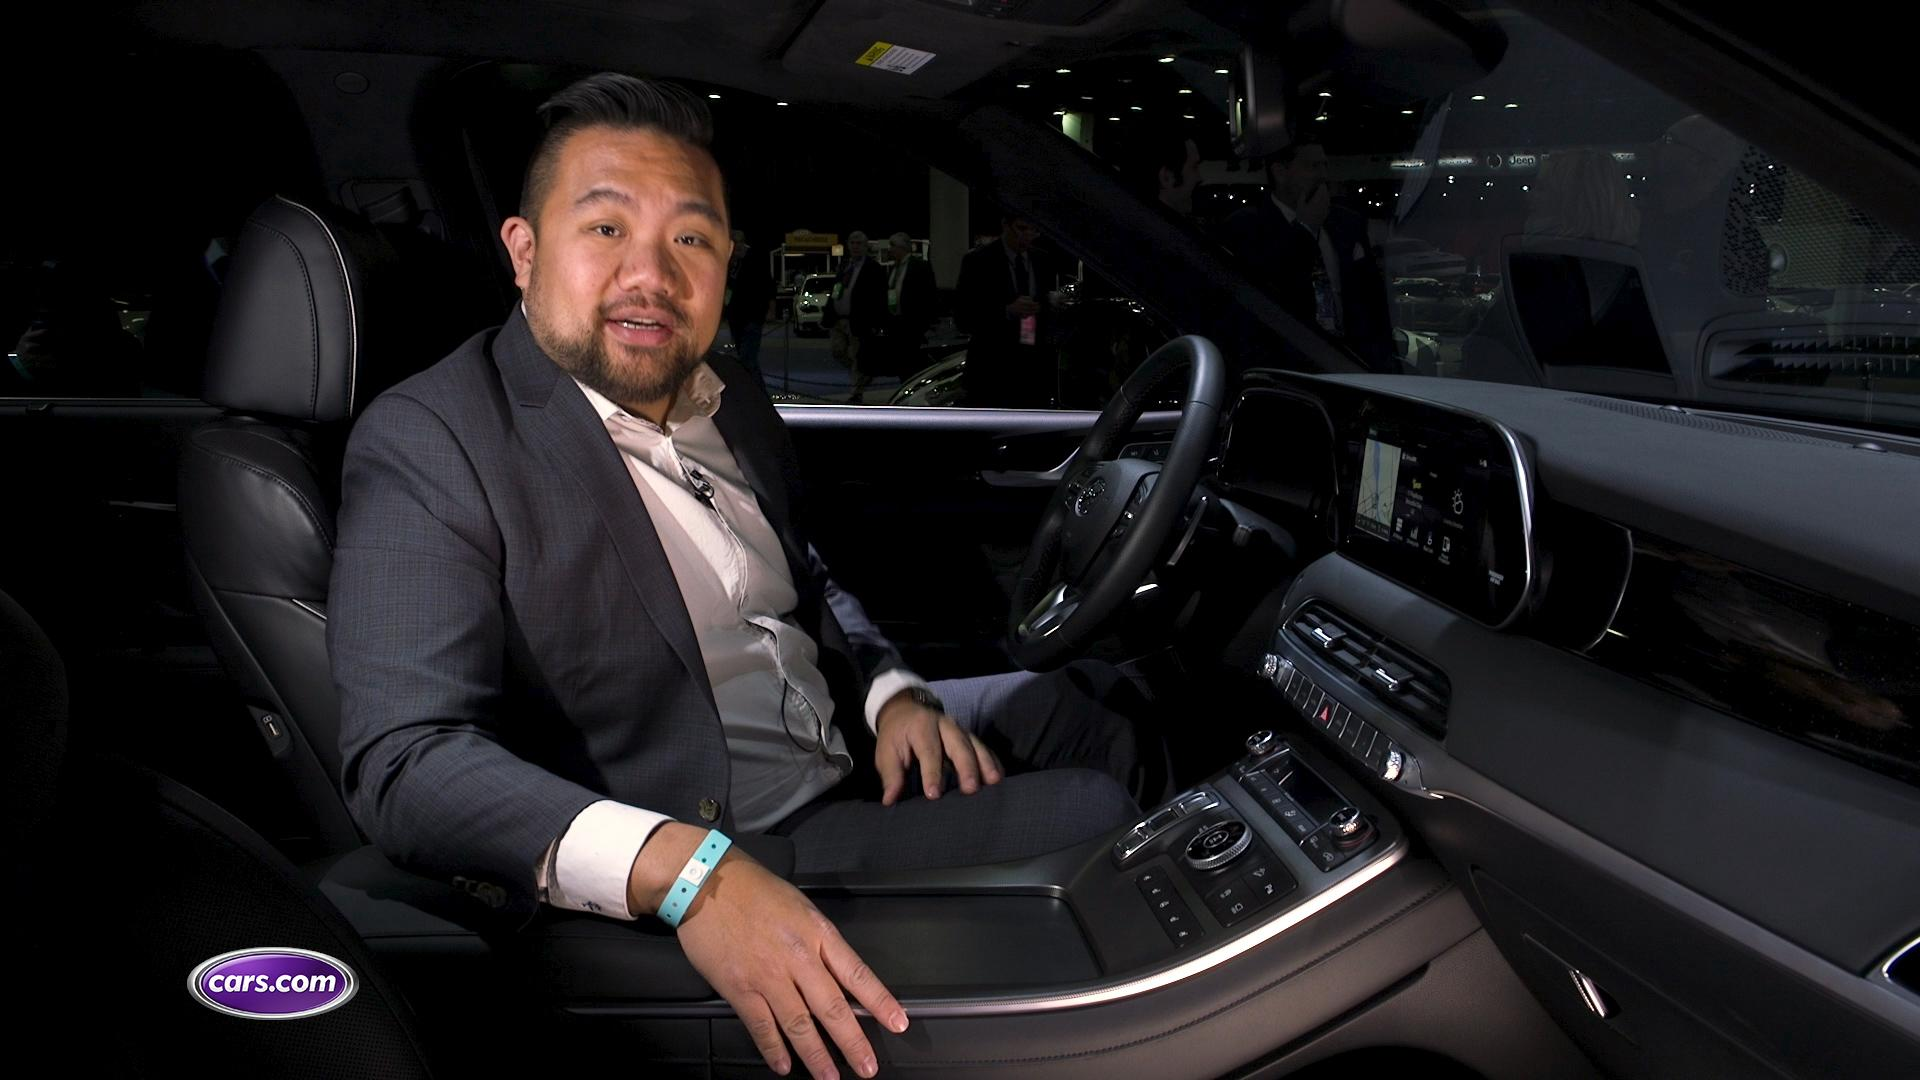 Video: 2020 Hyundai Palisade: Interior Impressions — Cars.com